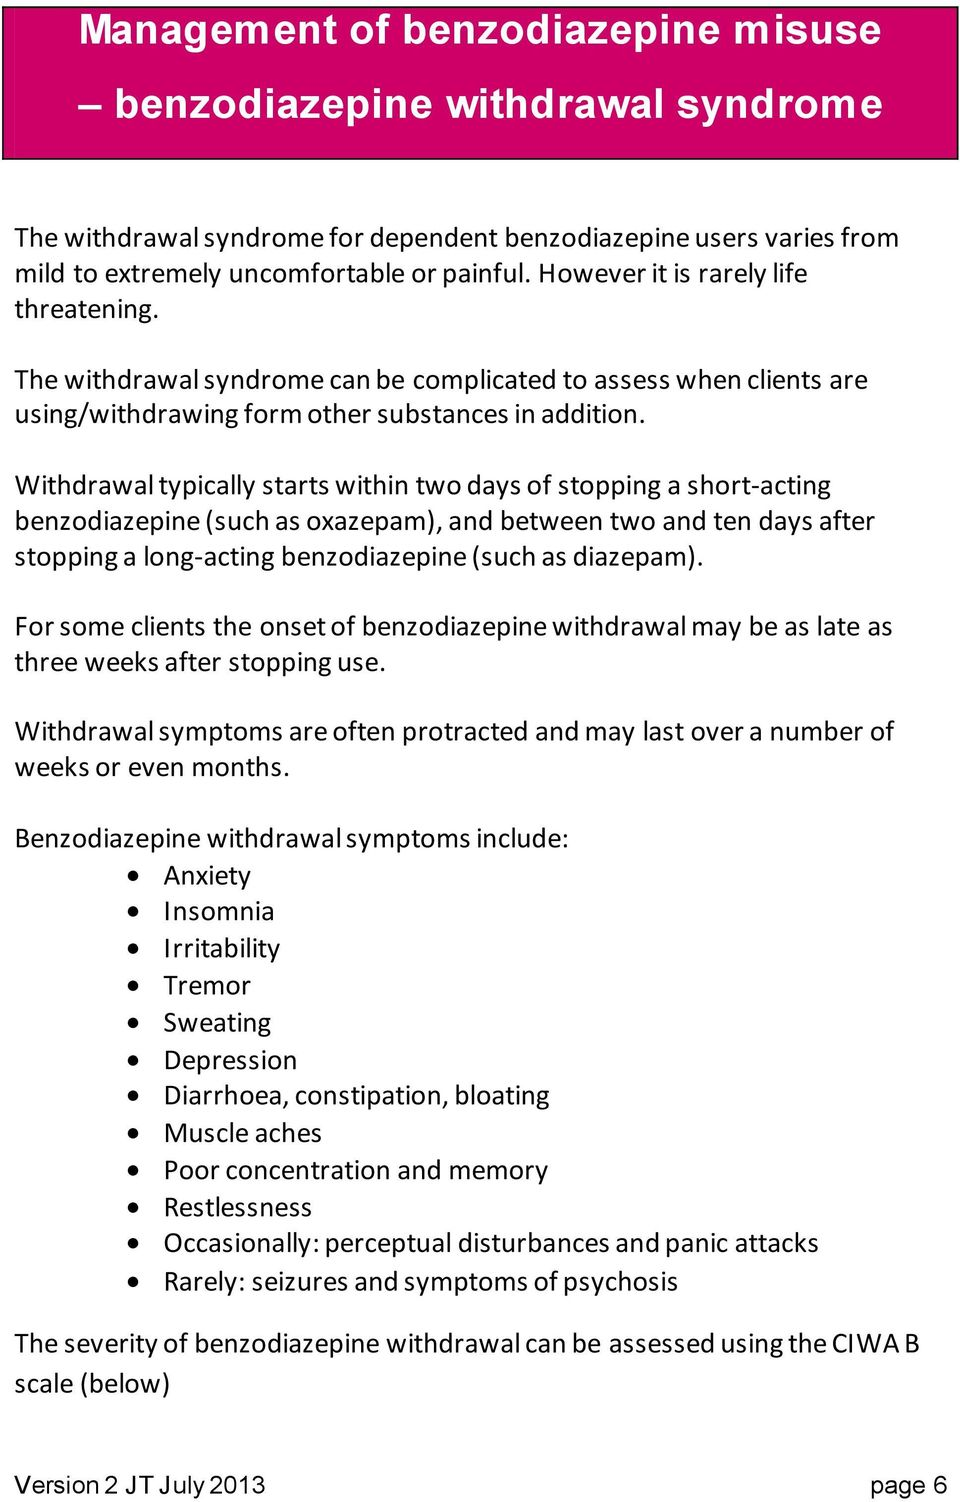 Withdrawal typically starts within two days of stopping a short-acting benzodiazepine (such as oxazepam), and between two and ten days after stopping a long-acting benzodiazepine (such as diazepam).